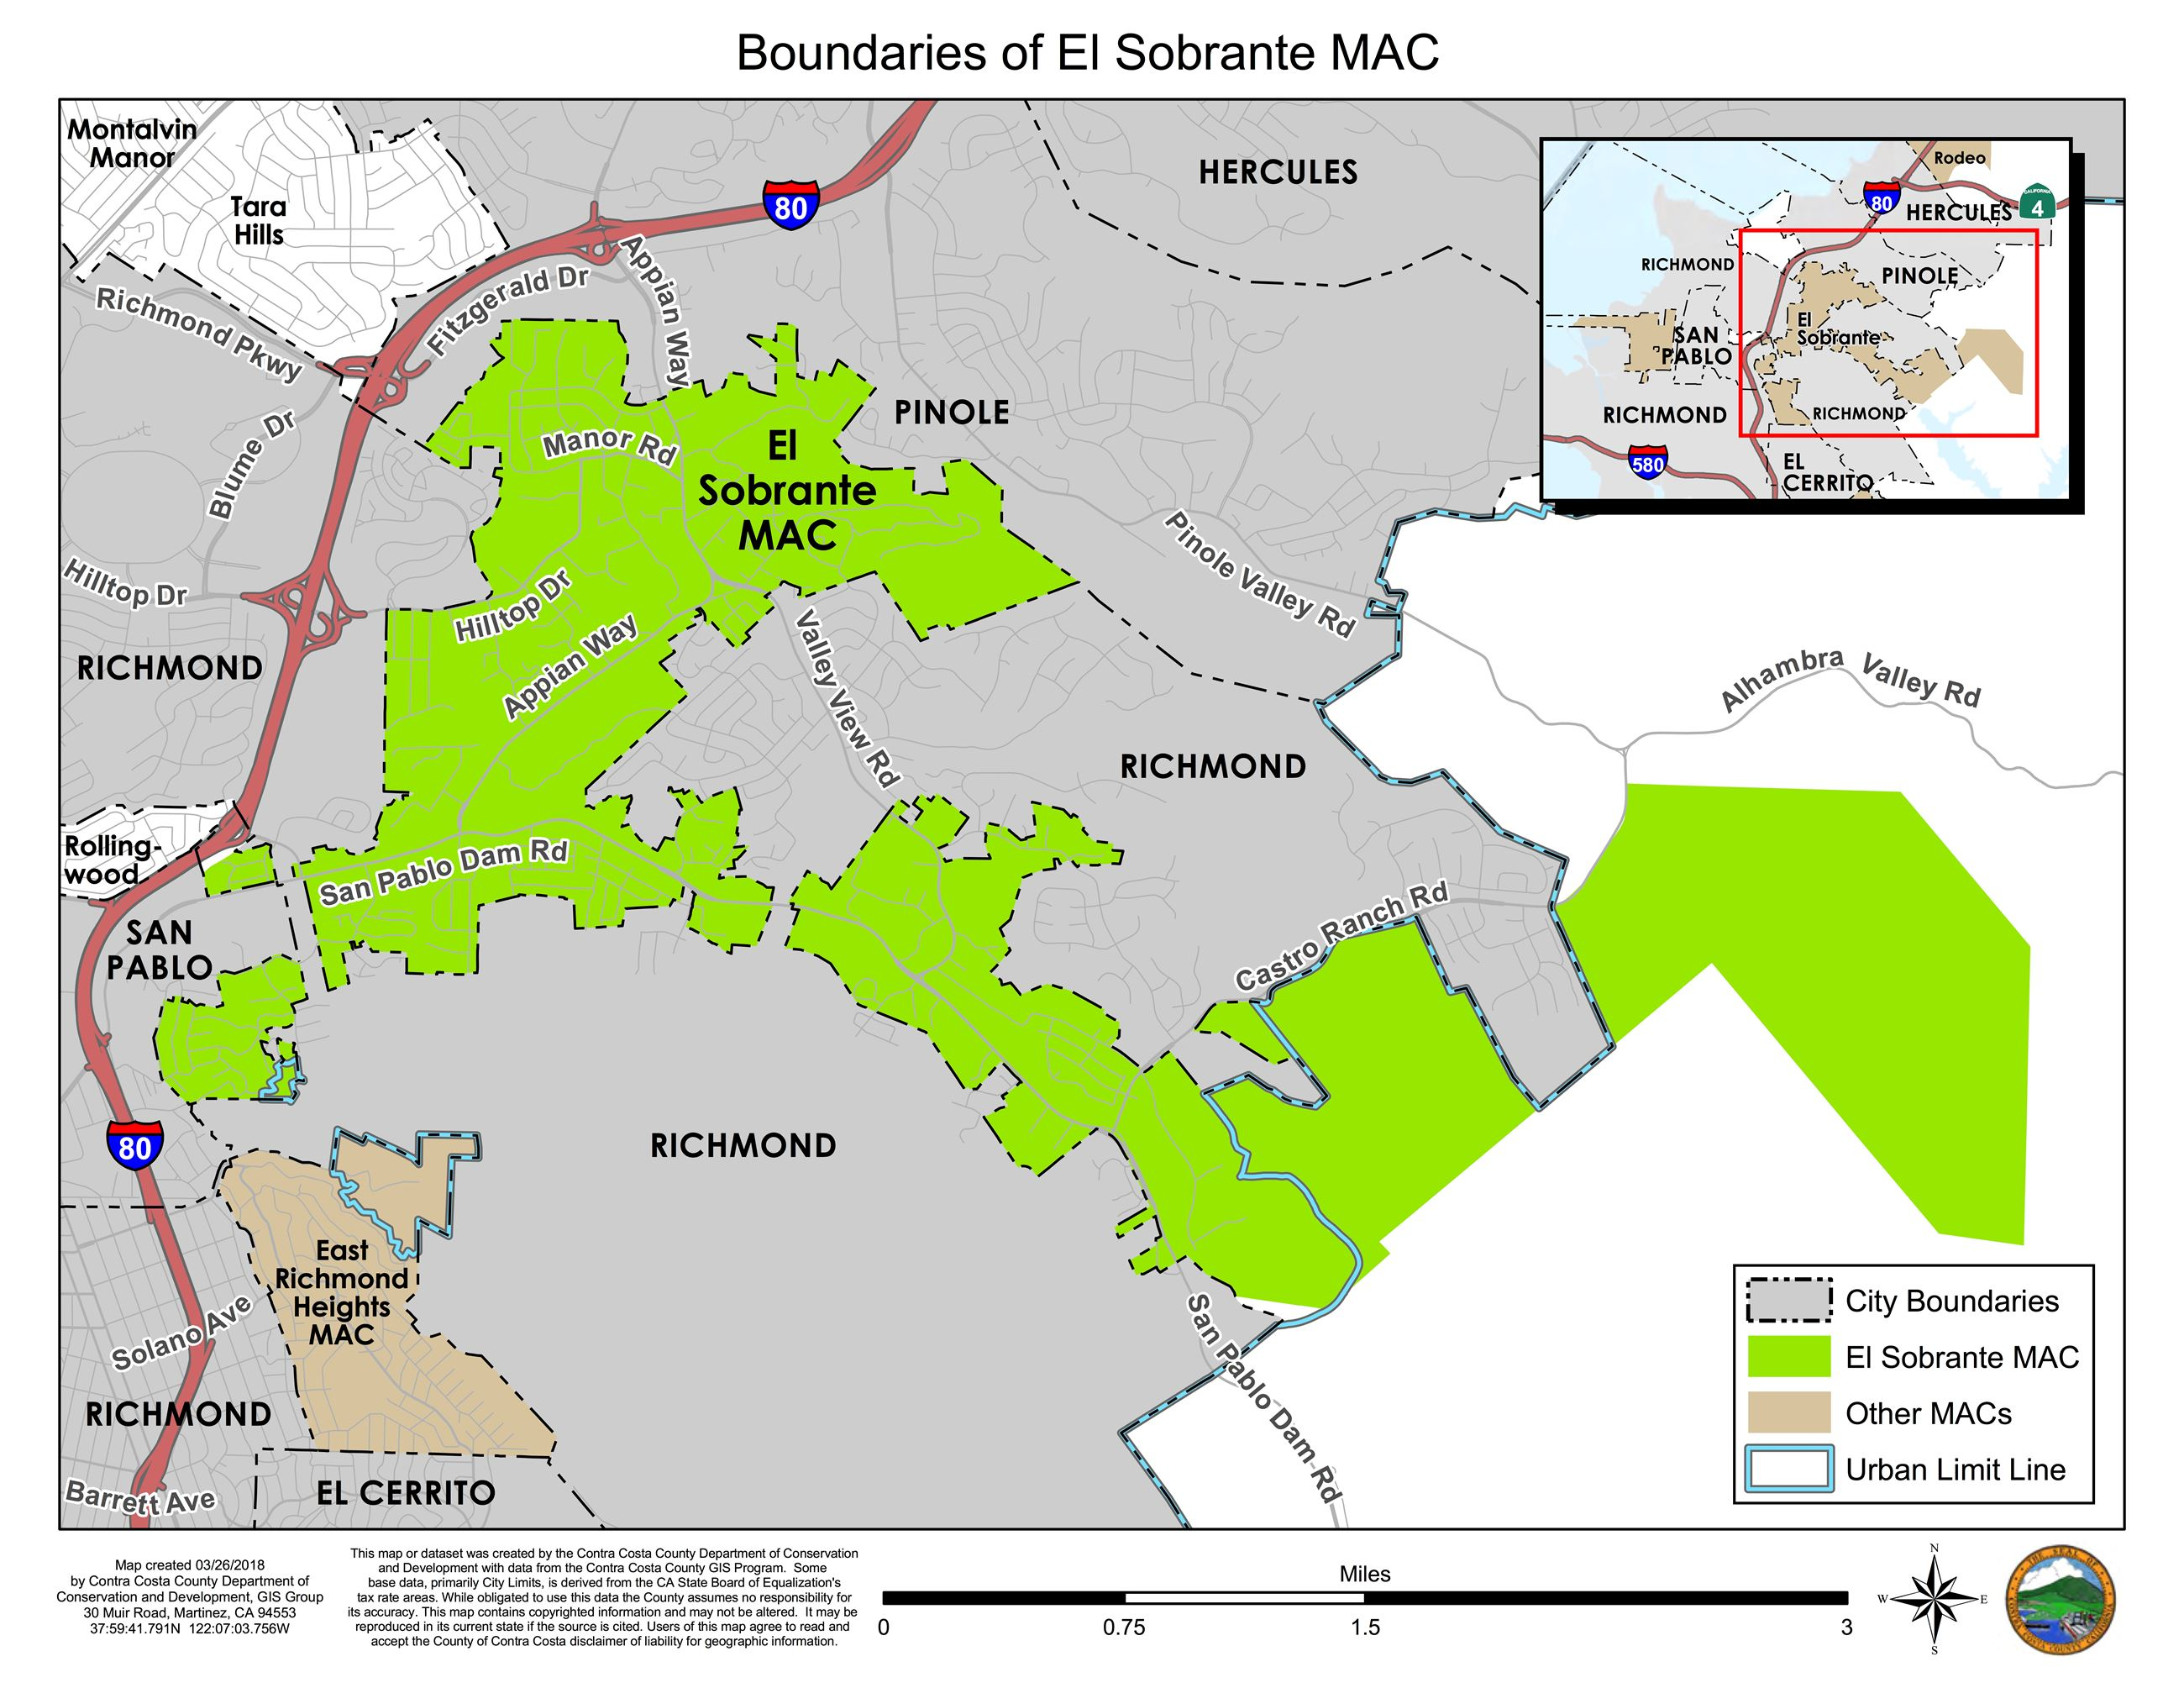 Boundaries of El Sobrante MAC